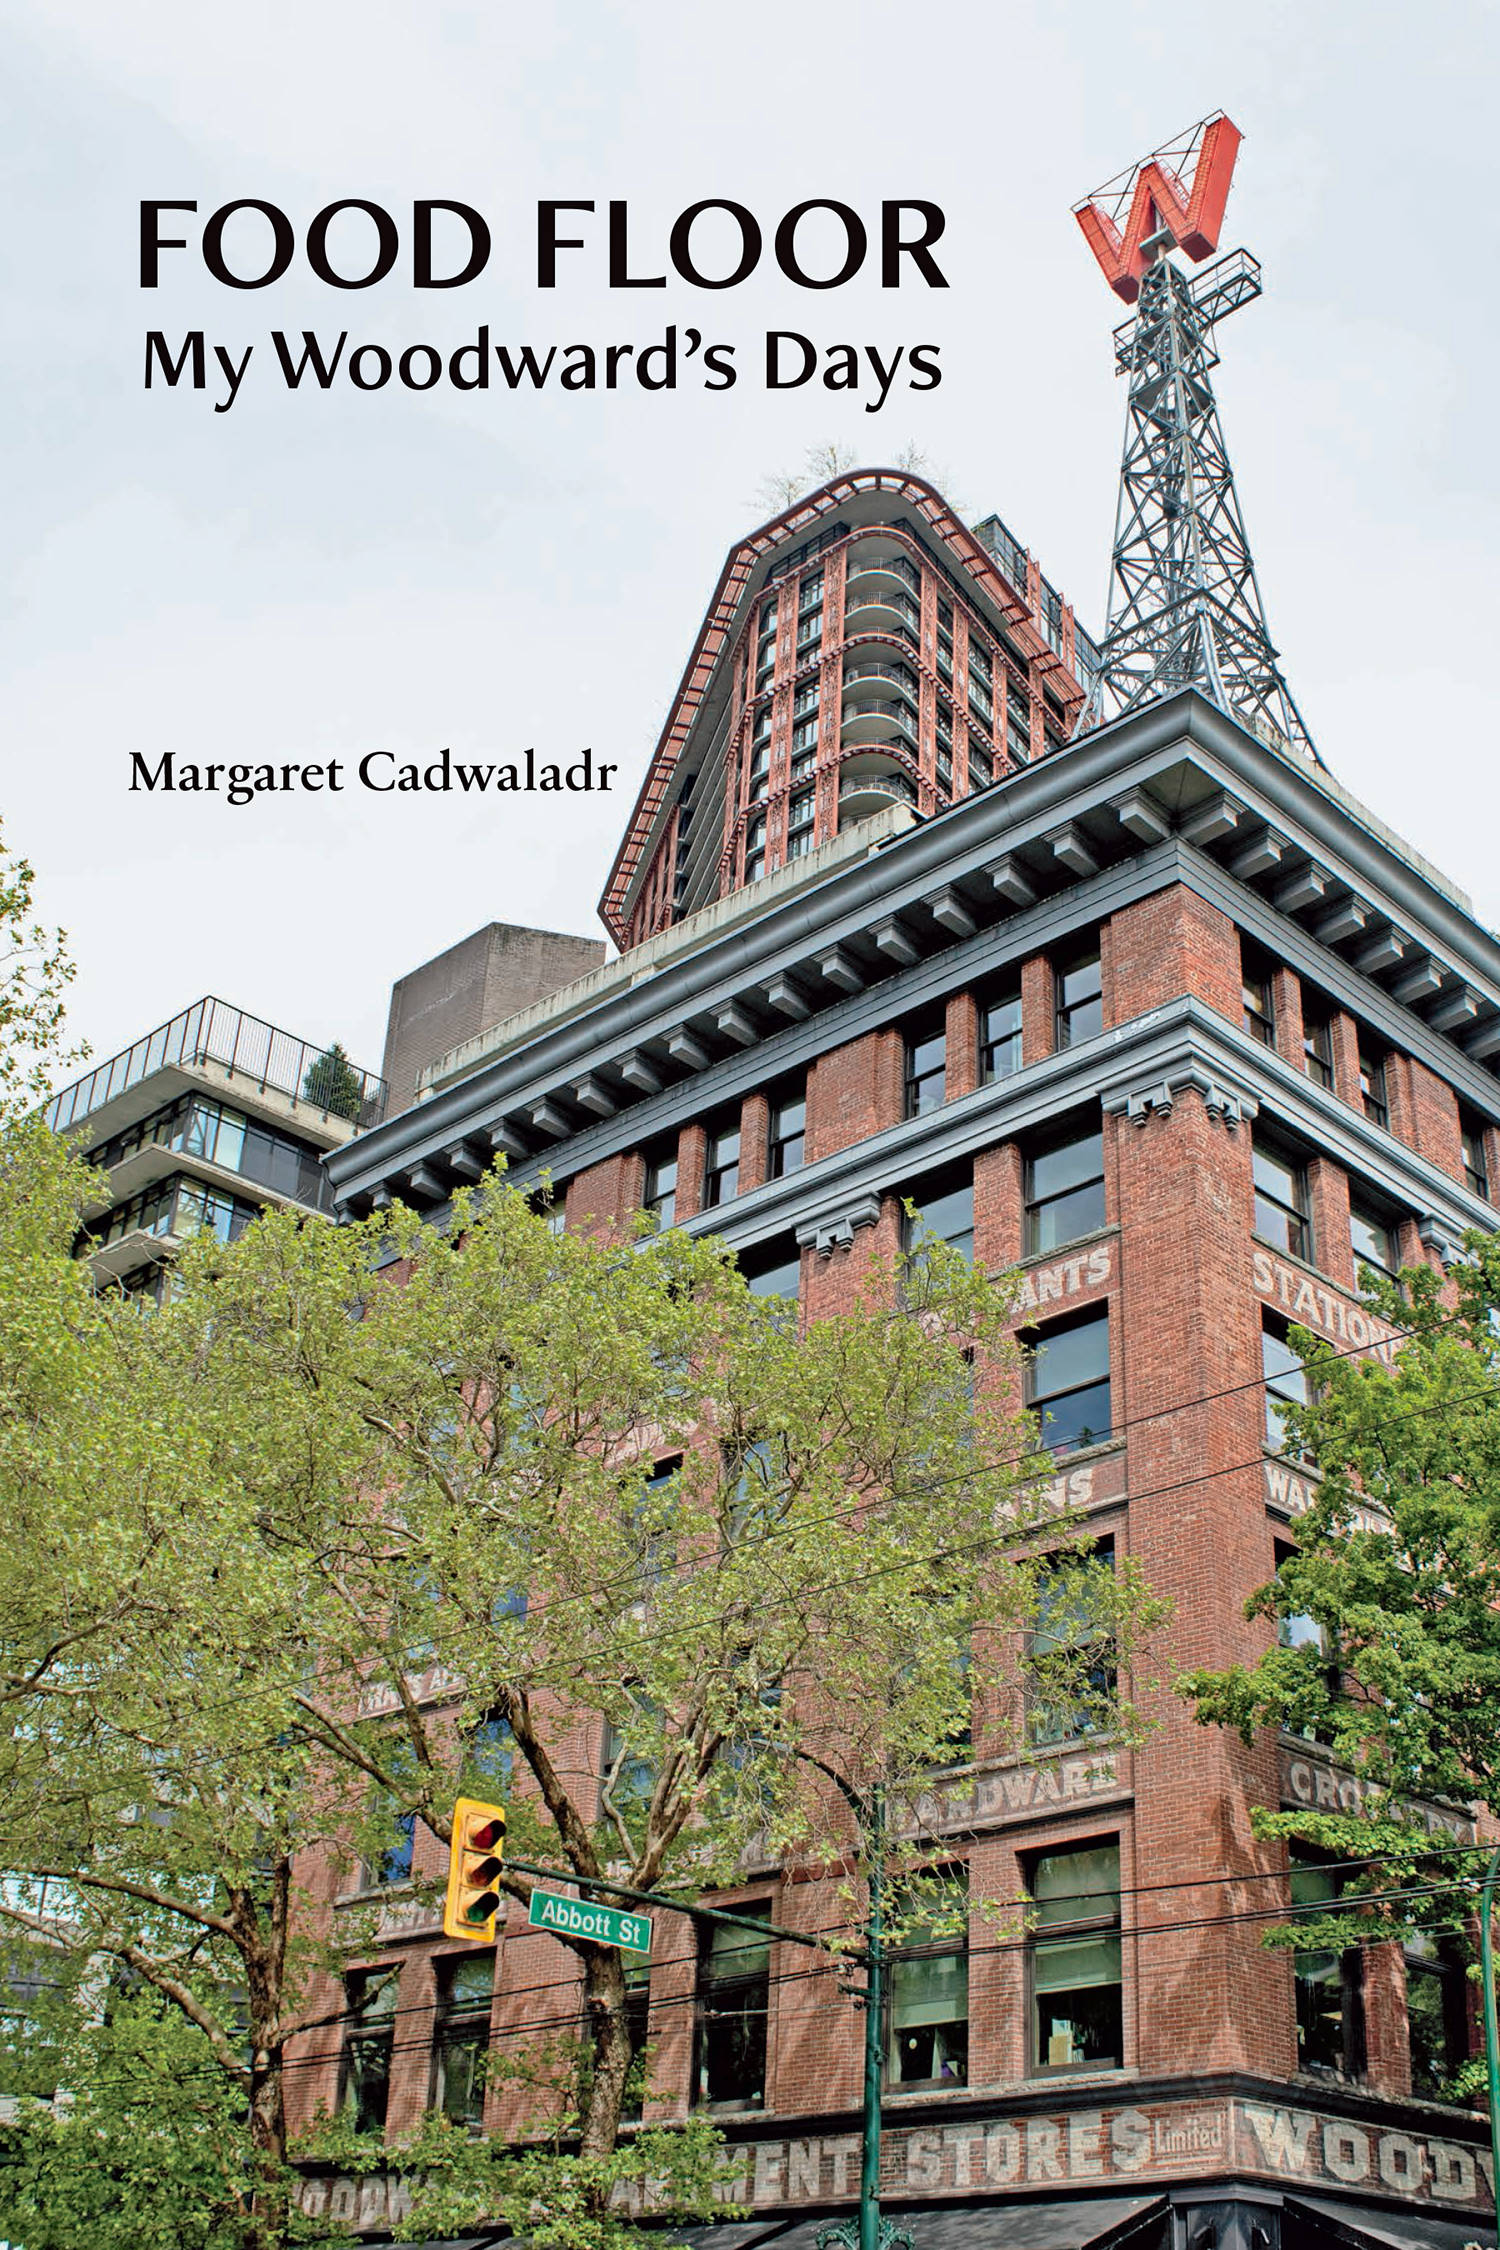 Margaret Cadwaladr lives in Langley and wrote a book about the two periods in her life when she worked at the Vancouver Woodward's Food Floor. (Madrona Books and Publishing)